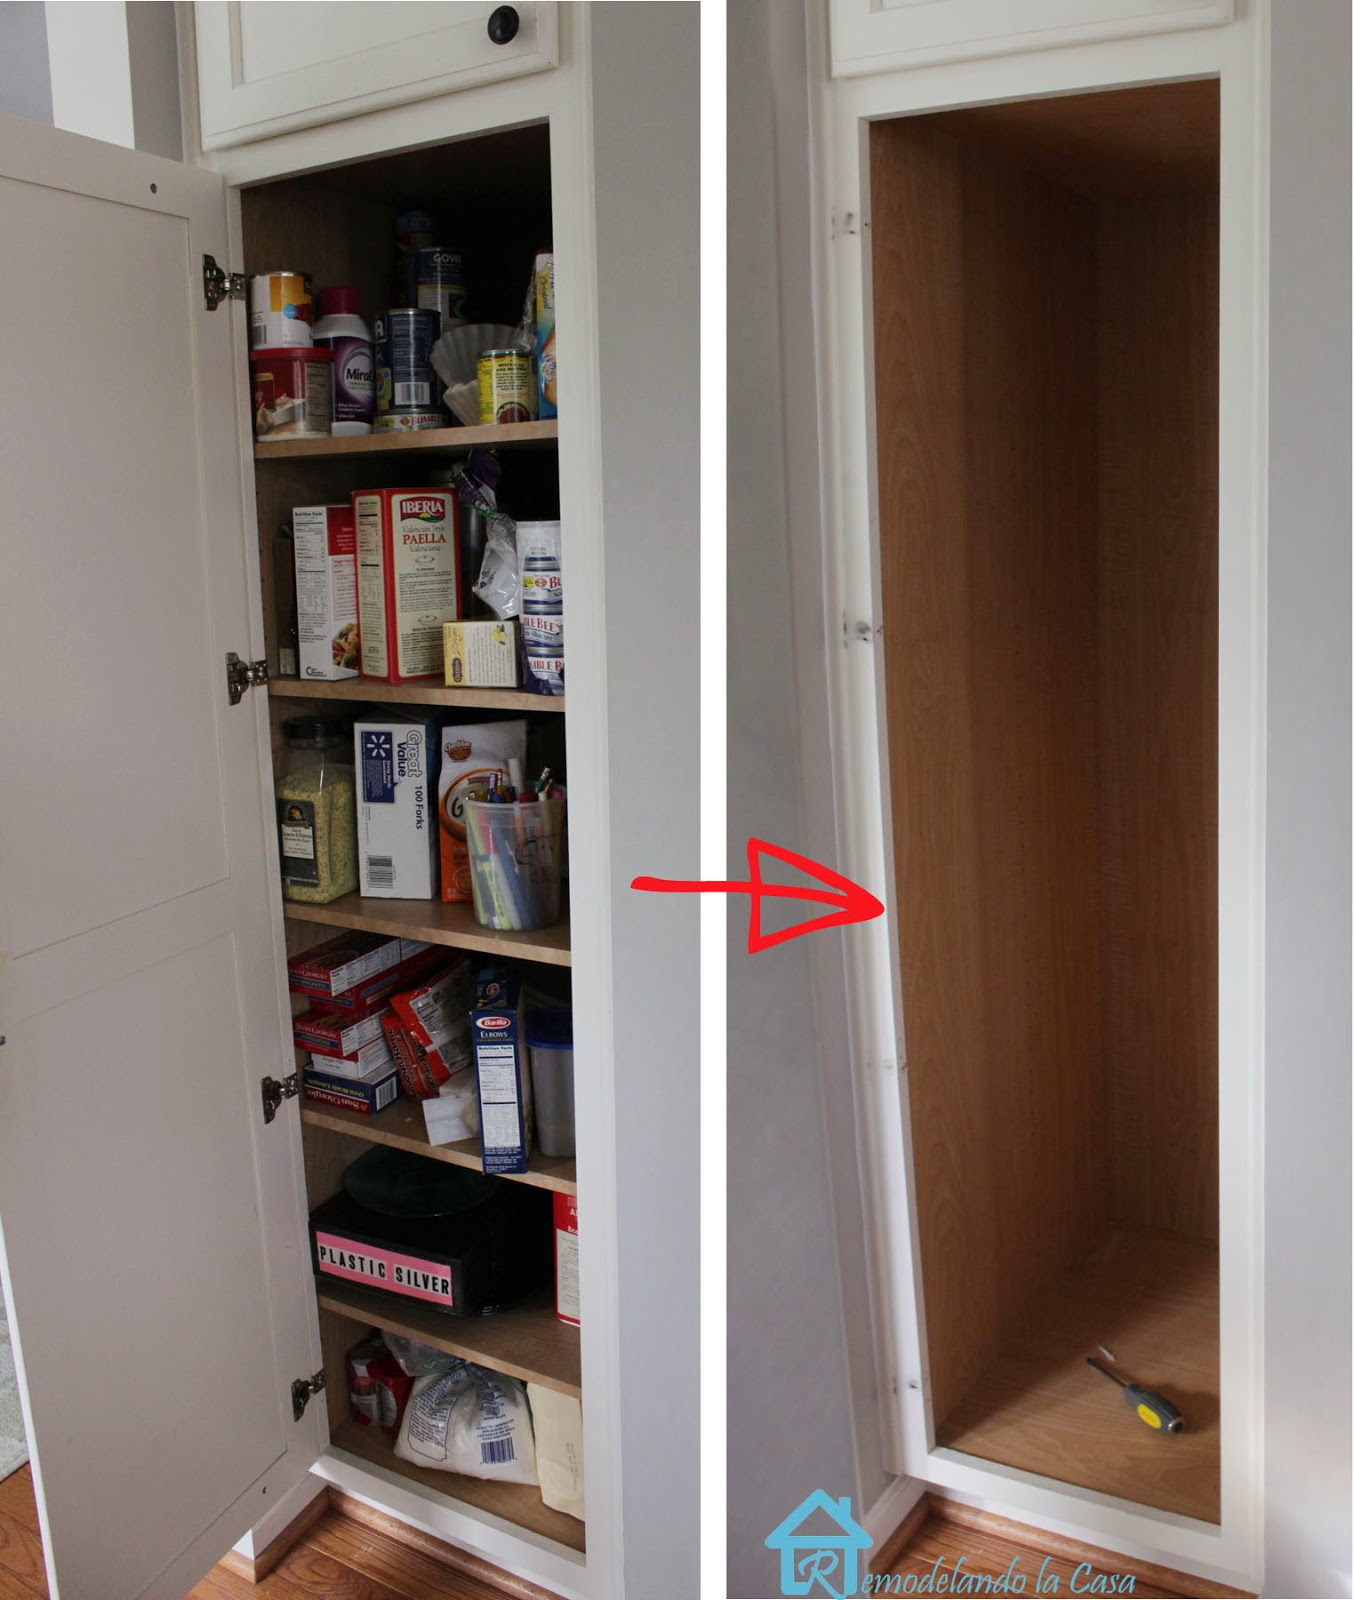 pantry cabinet is emptied for slide installation